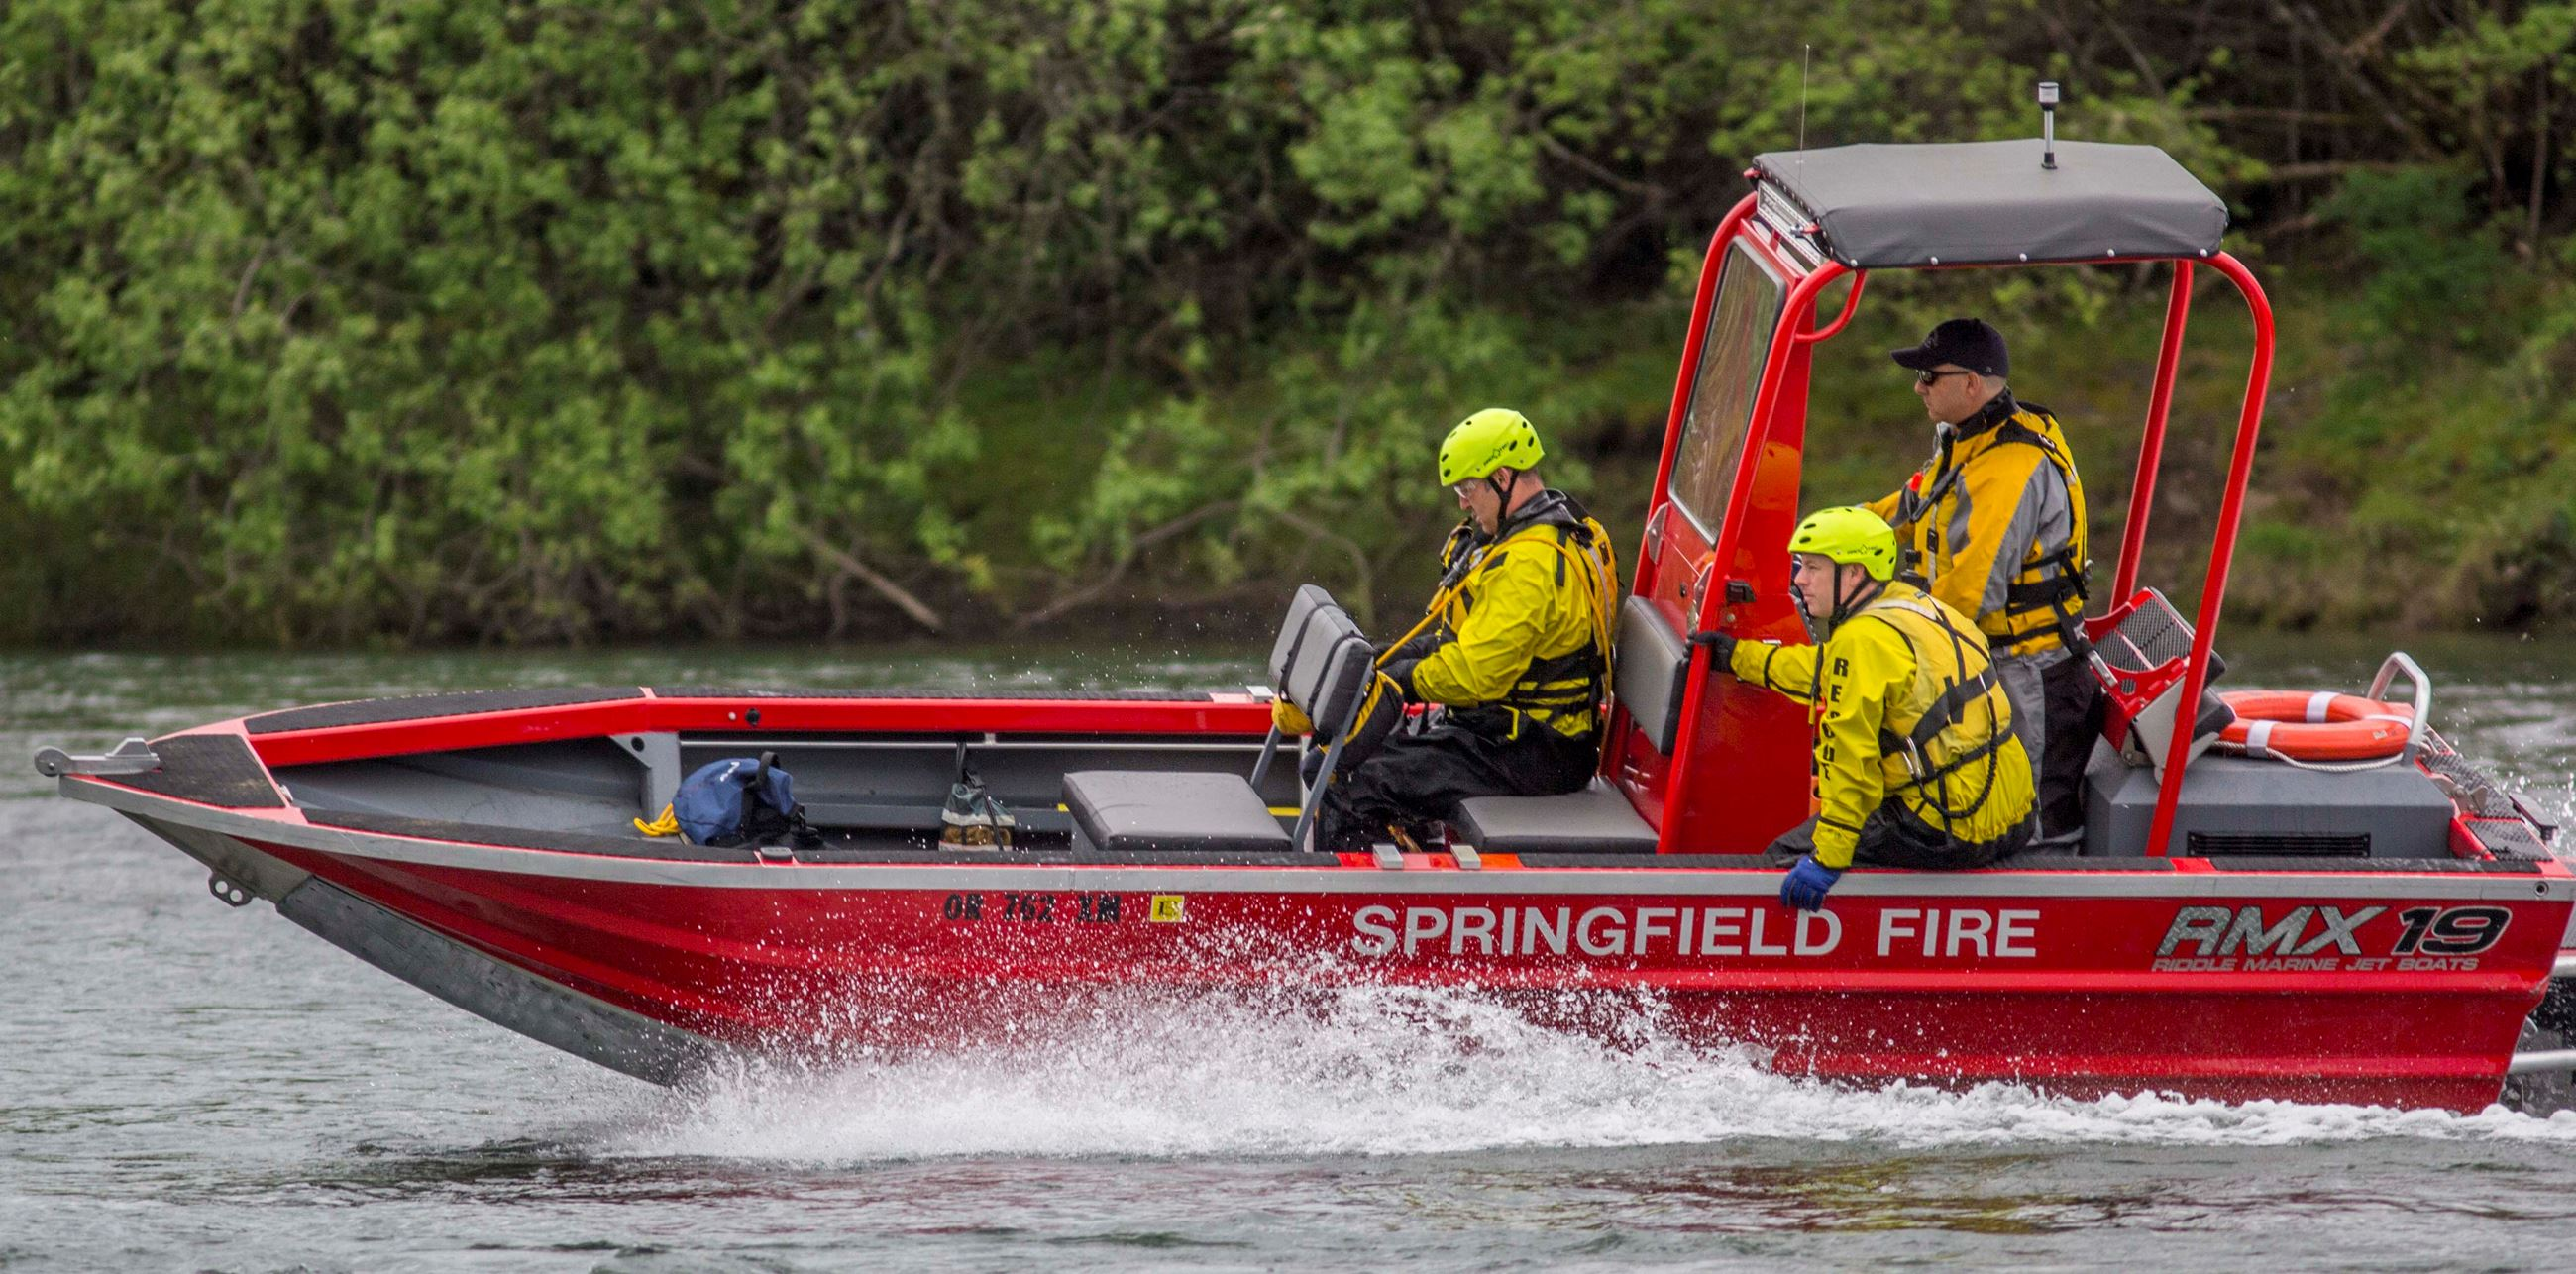 Eugene Springfield Fire Metro Water Rescue Team Members